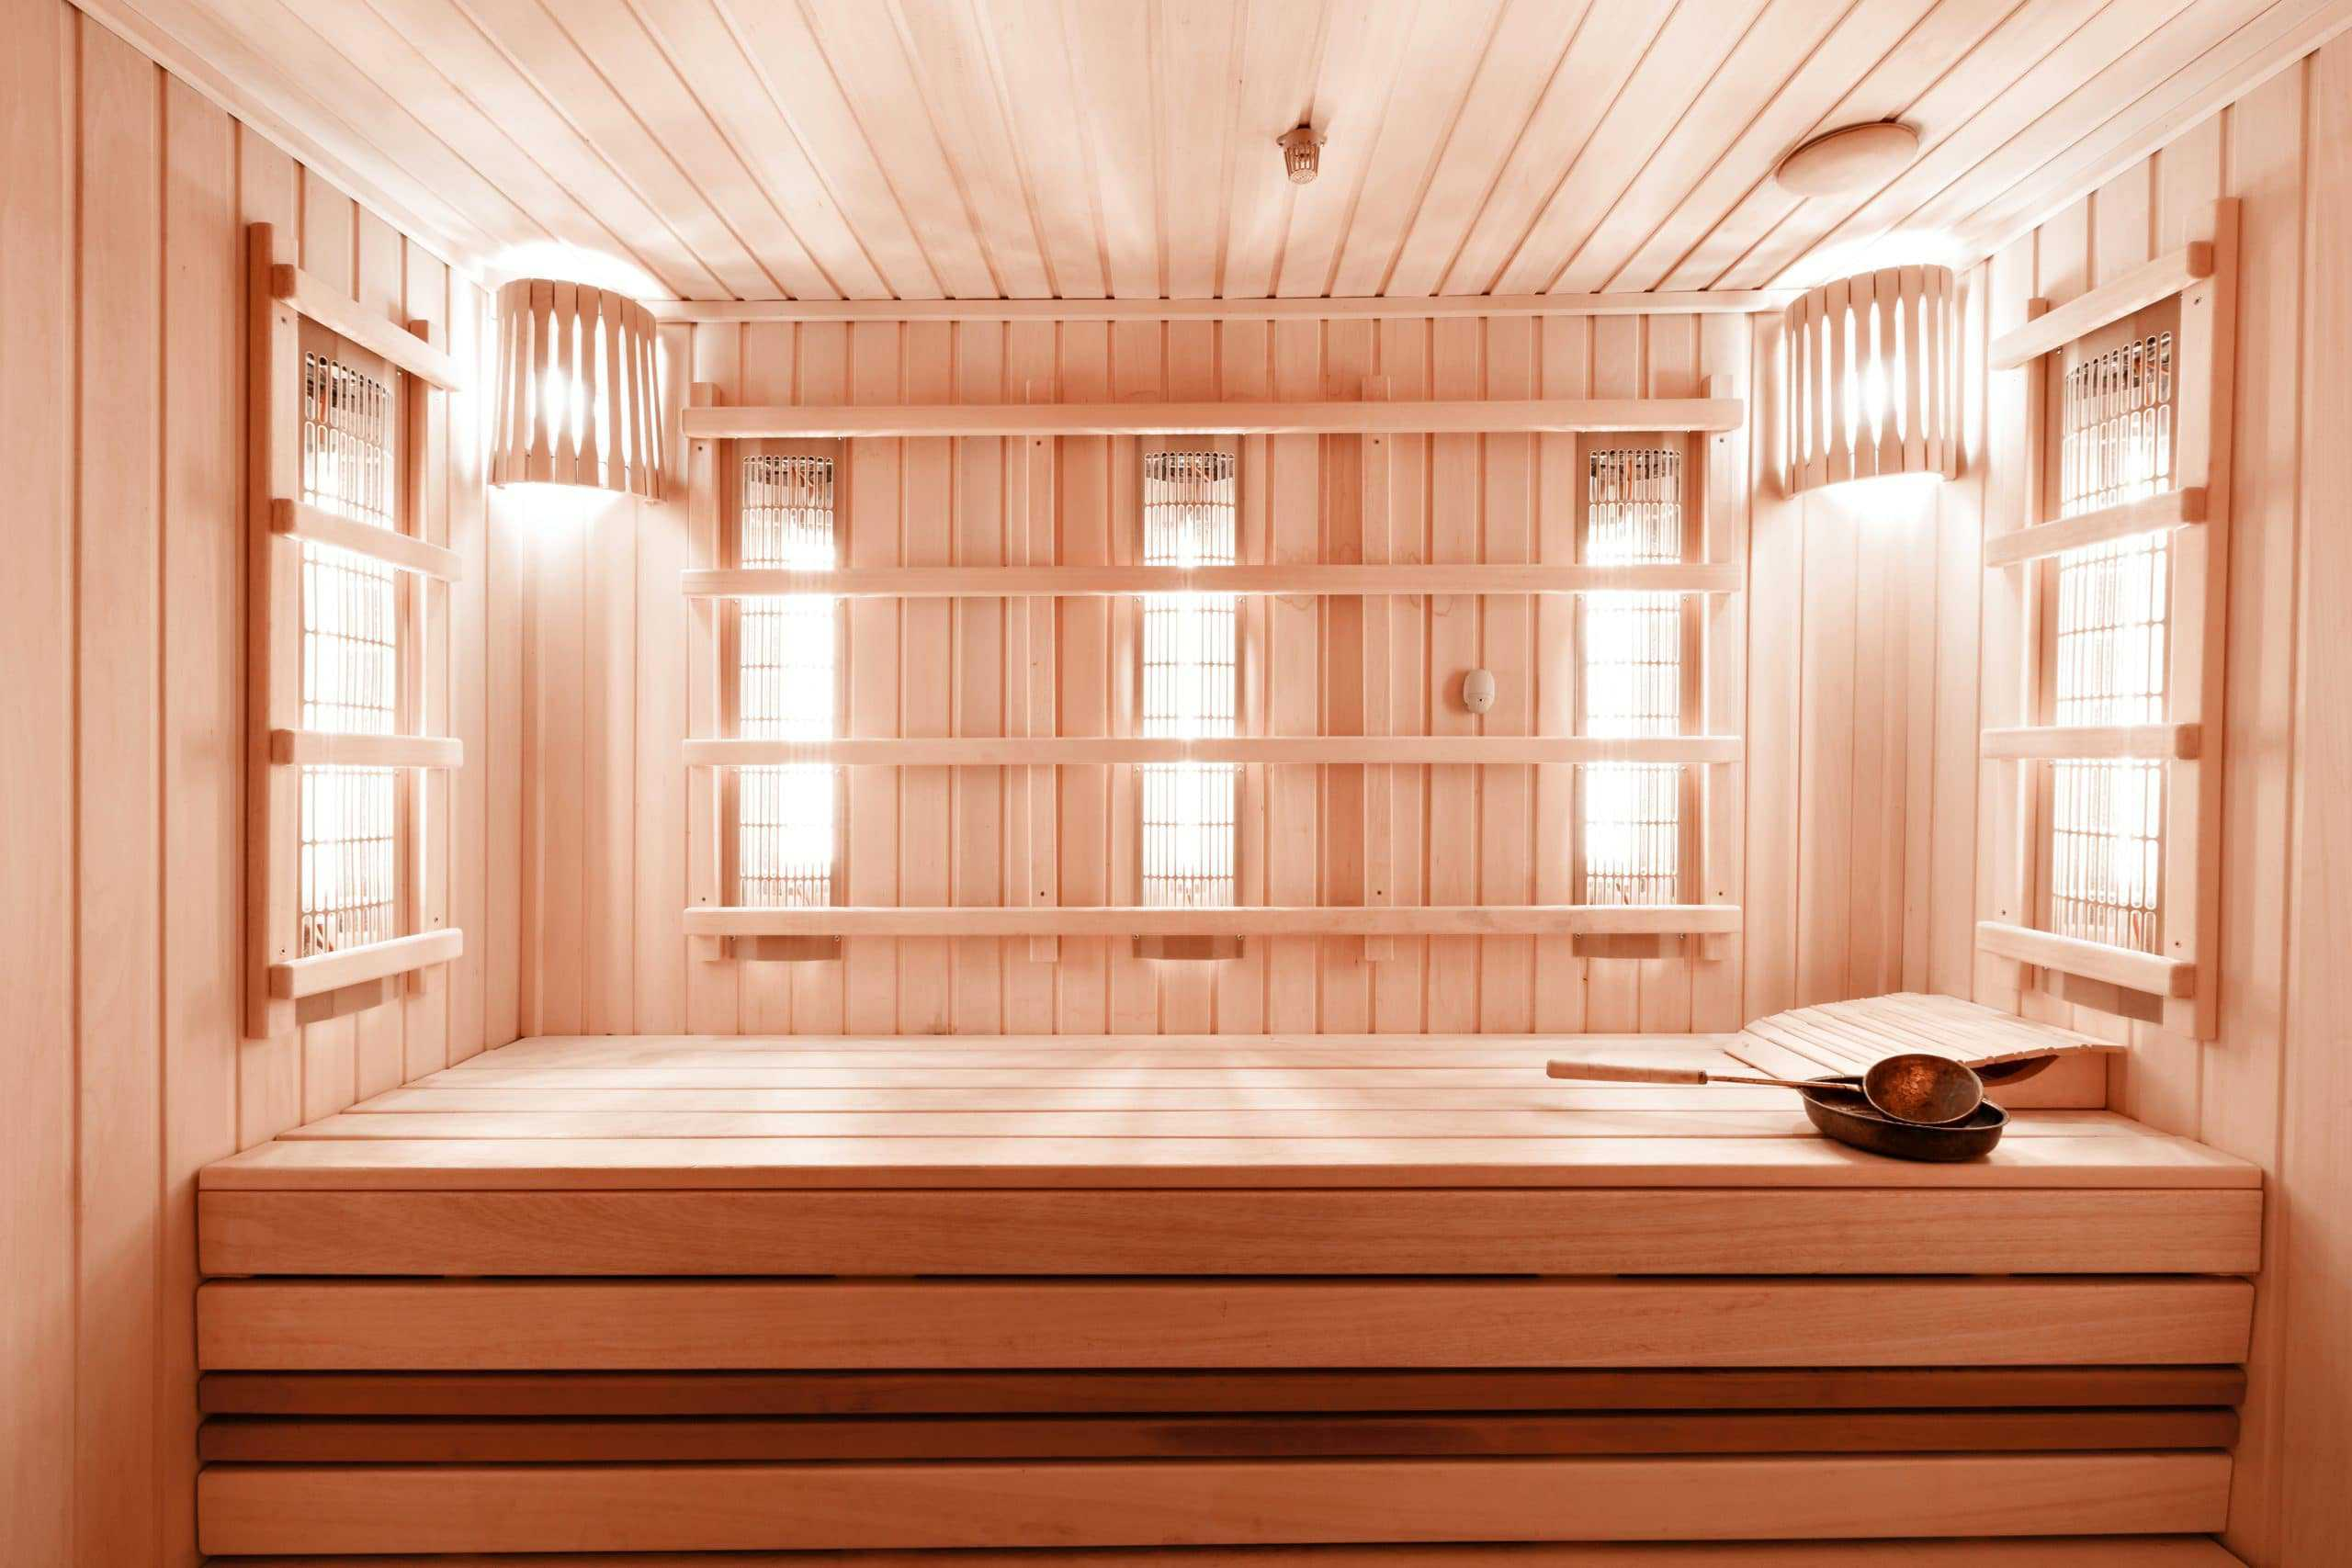 Interior of Finnish infrared sauna